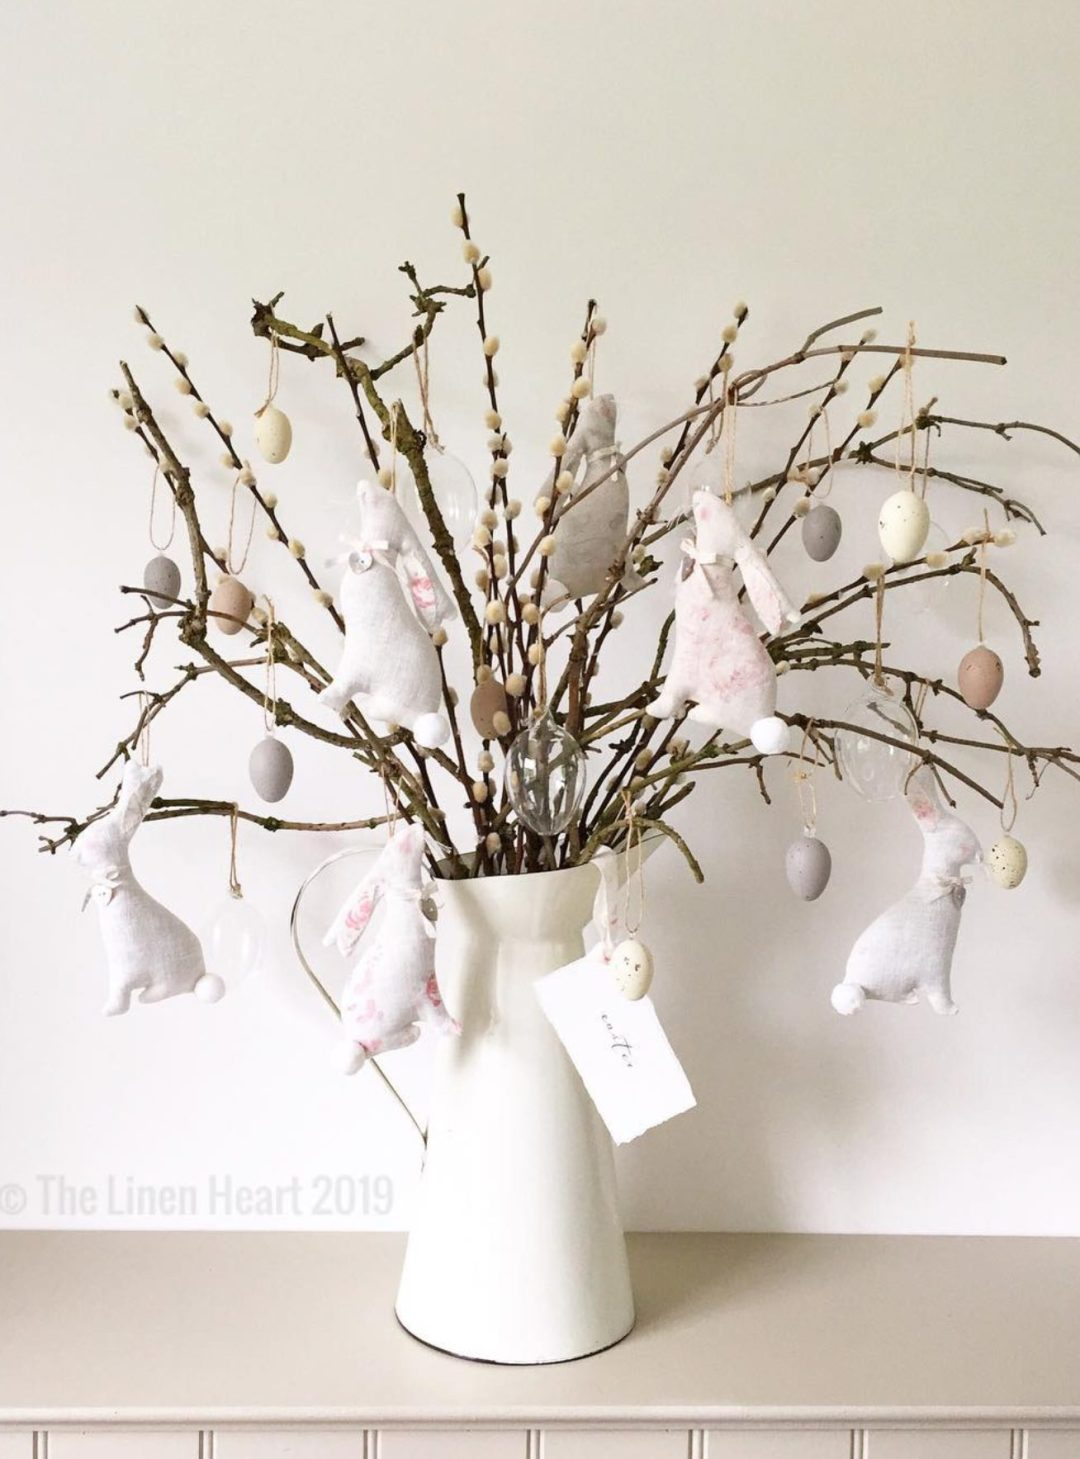 Pussy willow stems with Easter bunny decorations